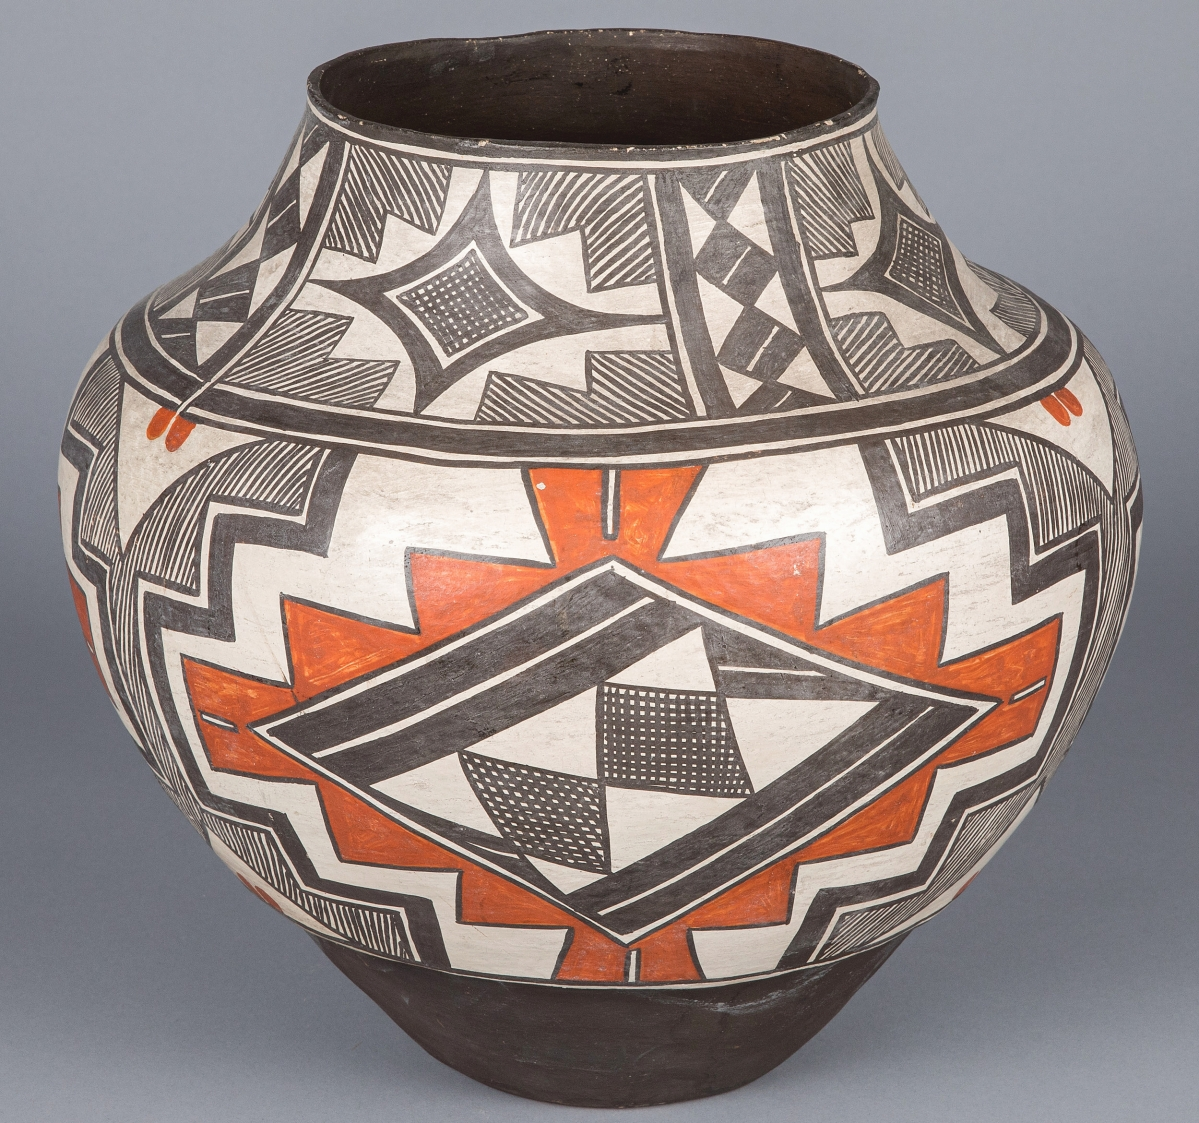 From Two Spirit Laguna potter Arroh-ah-och (1830-1900) came this olla that went out at $8,442. Arroh-ah-och and We'wha are two known transgender Native American potters that rose to prominence and respect in their communities.